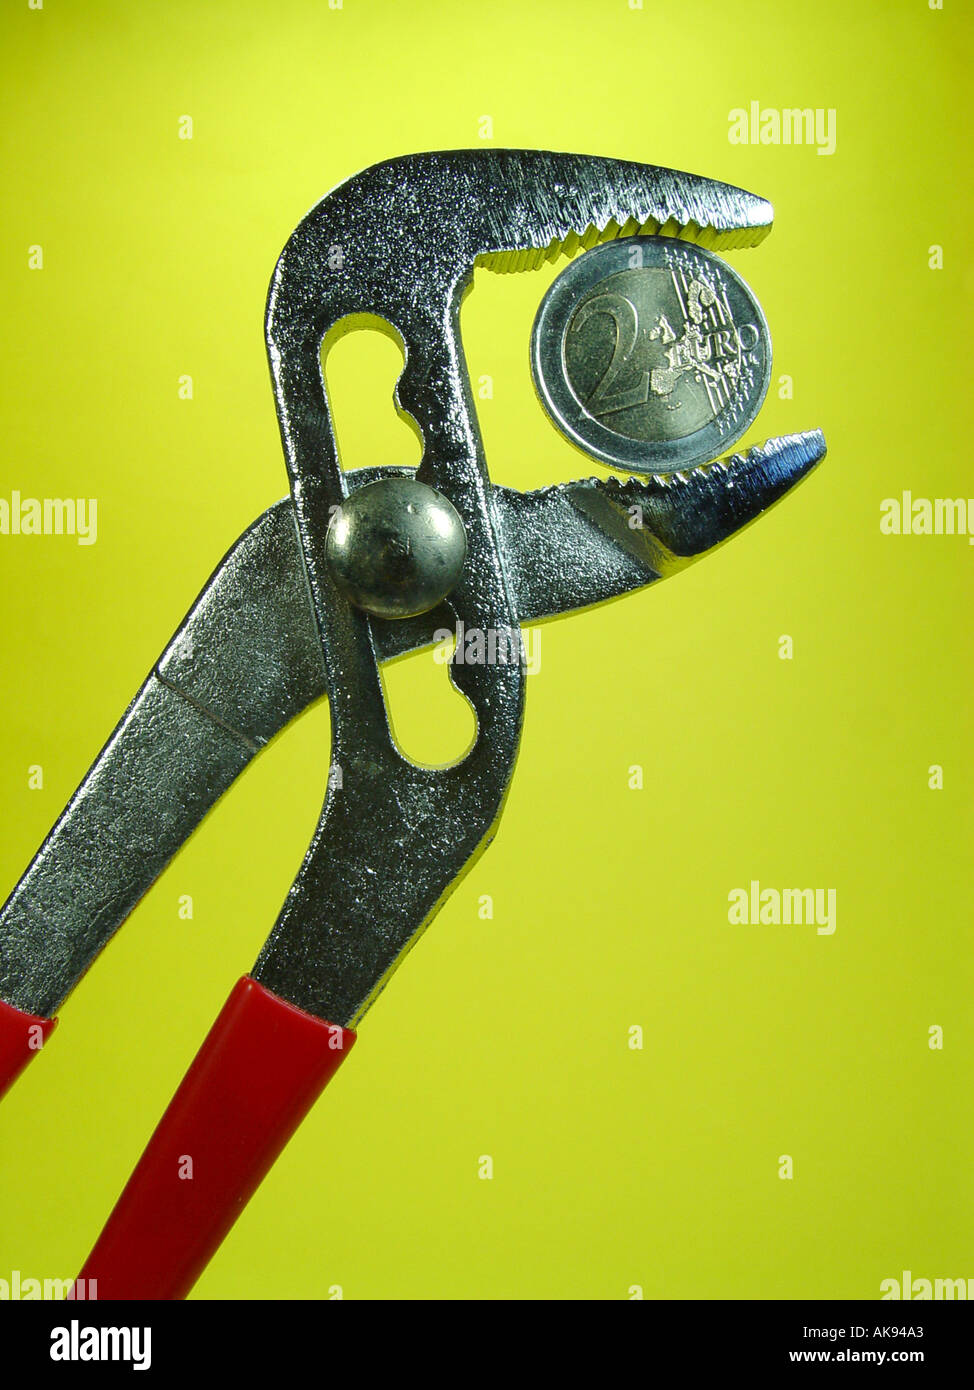 Euro In The Pliers As Symbol For Exchange Rate Fluctuations In The